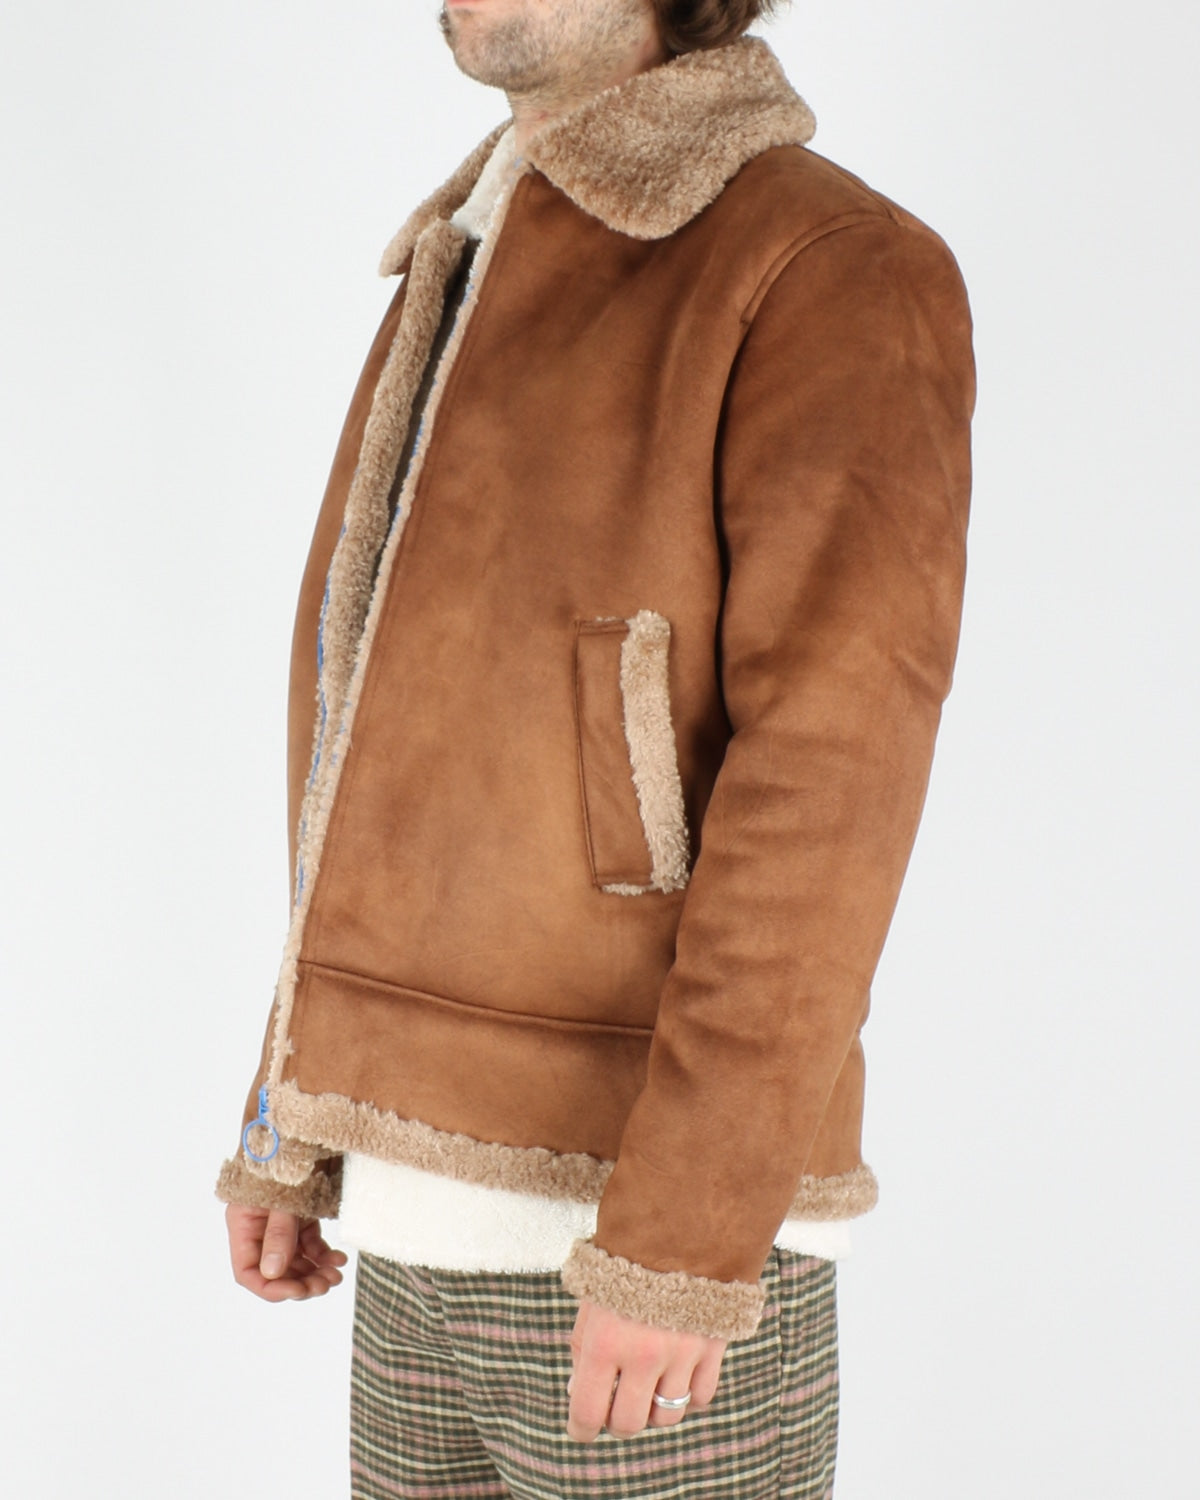 soulland_max faux sherling jacket_brown_2_6